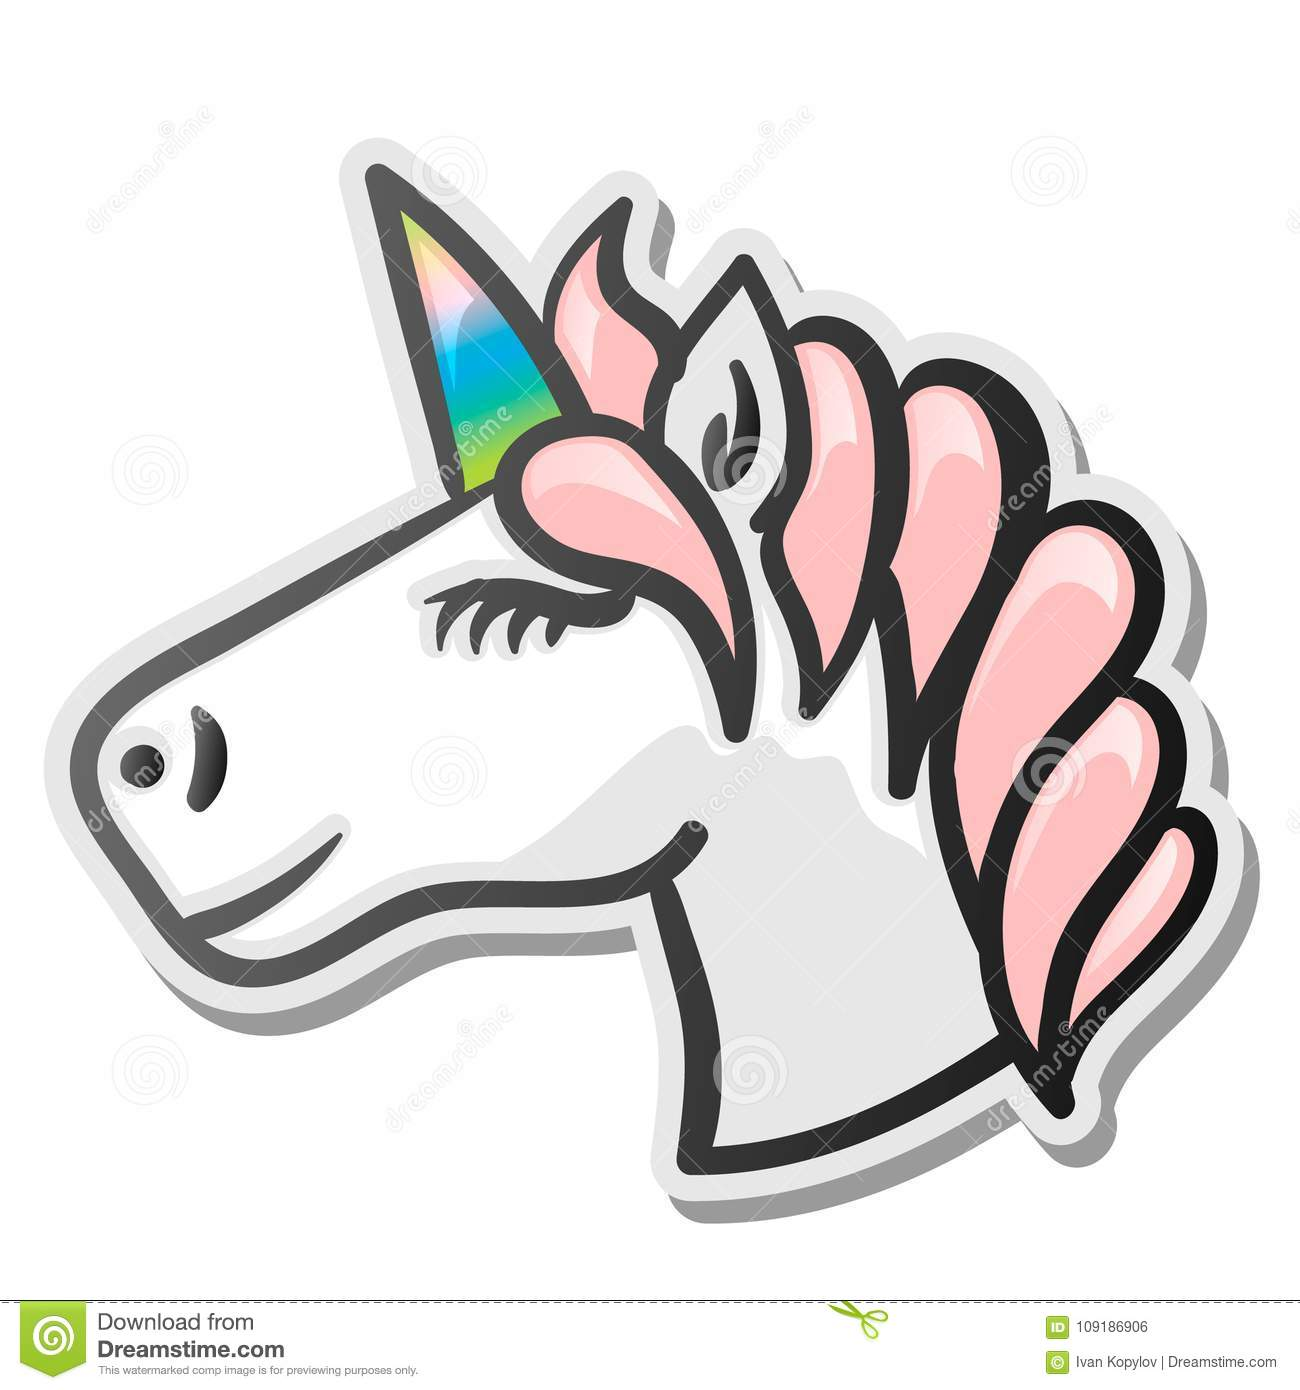 Unicorn Emoji Sticker Stock Vector Illustration Of Hair 109186906